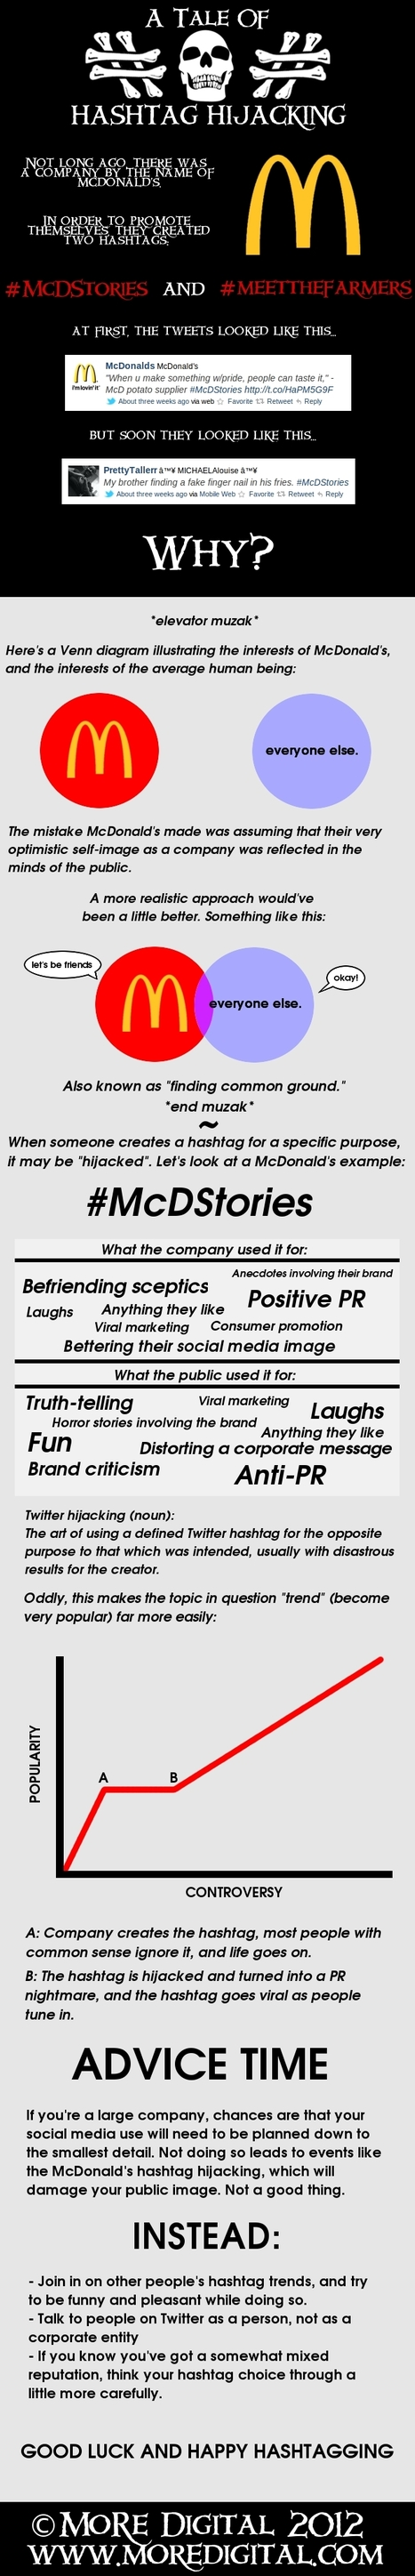 A Tale of Hashtag Jacking [INFOGRAPHIC]   Consumer Engagement Marketing   Scoop.it